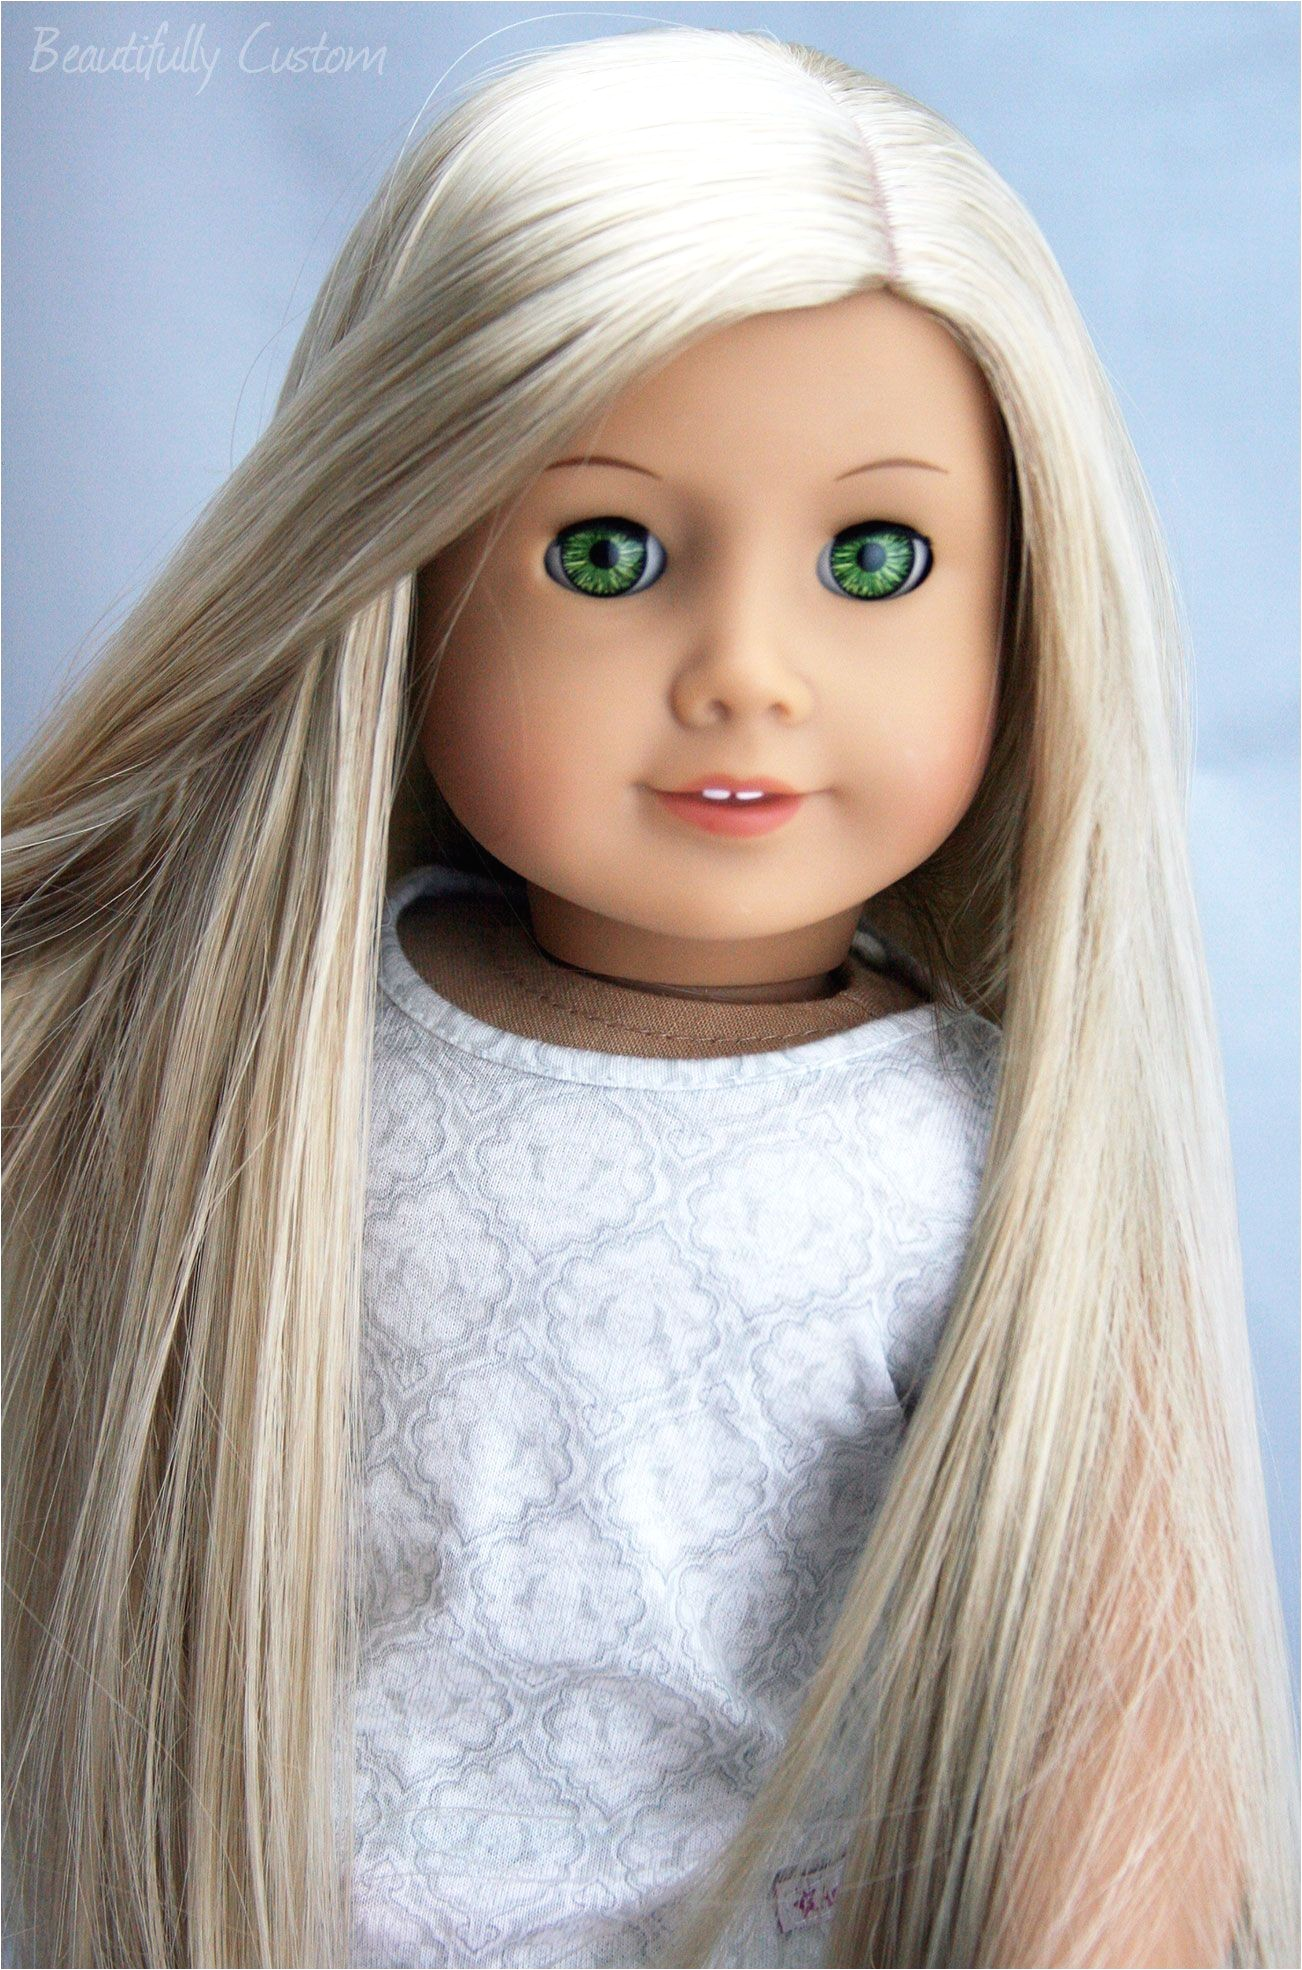 Hairstyles for American Girl Dolls with Short Hair American Girl Doll Hairstyles for Straight Hair